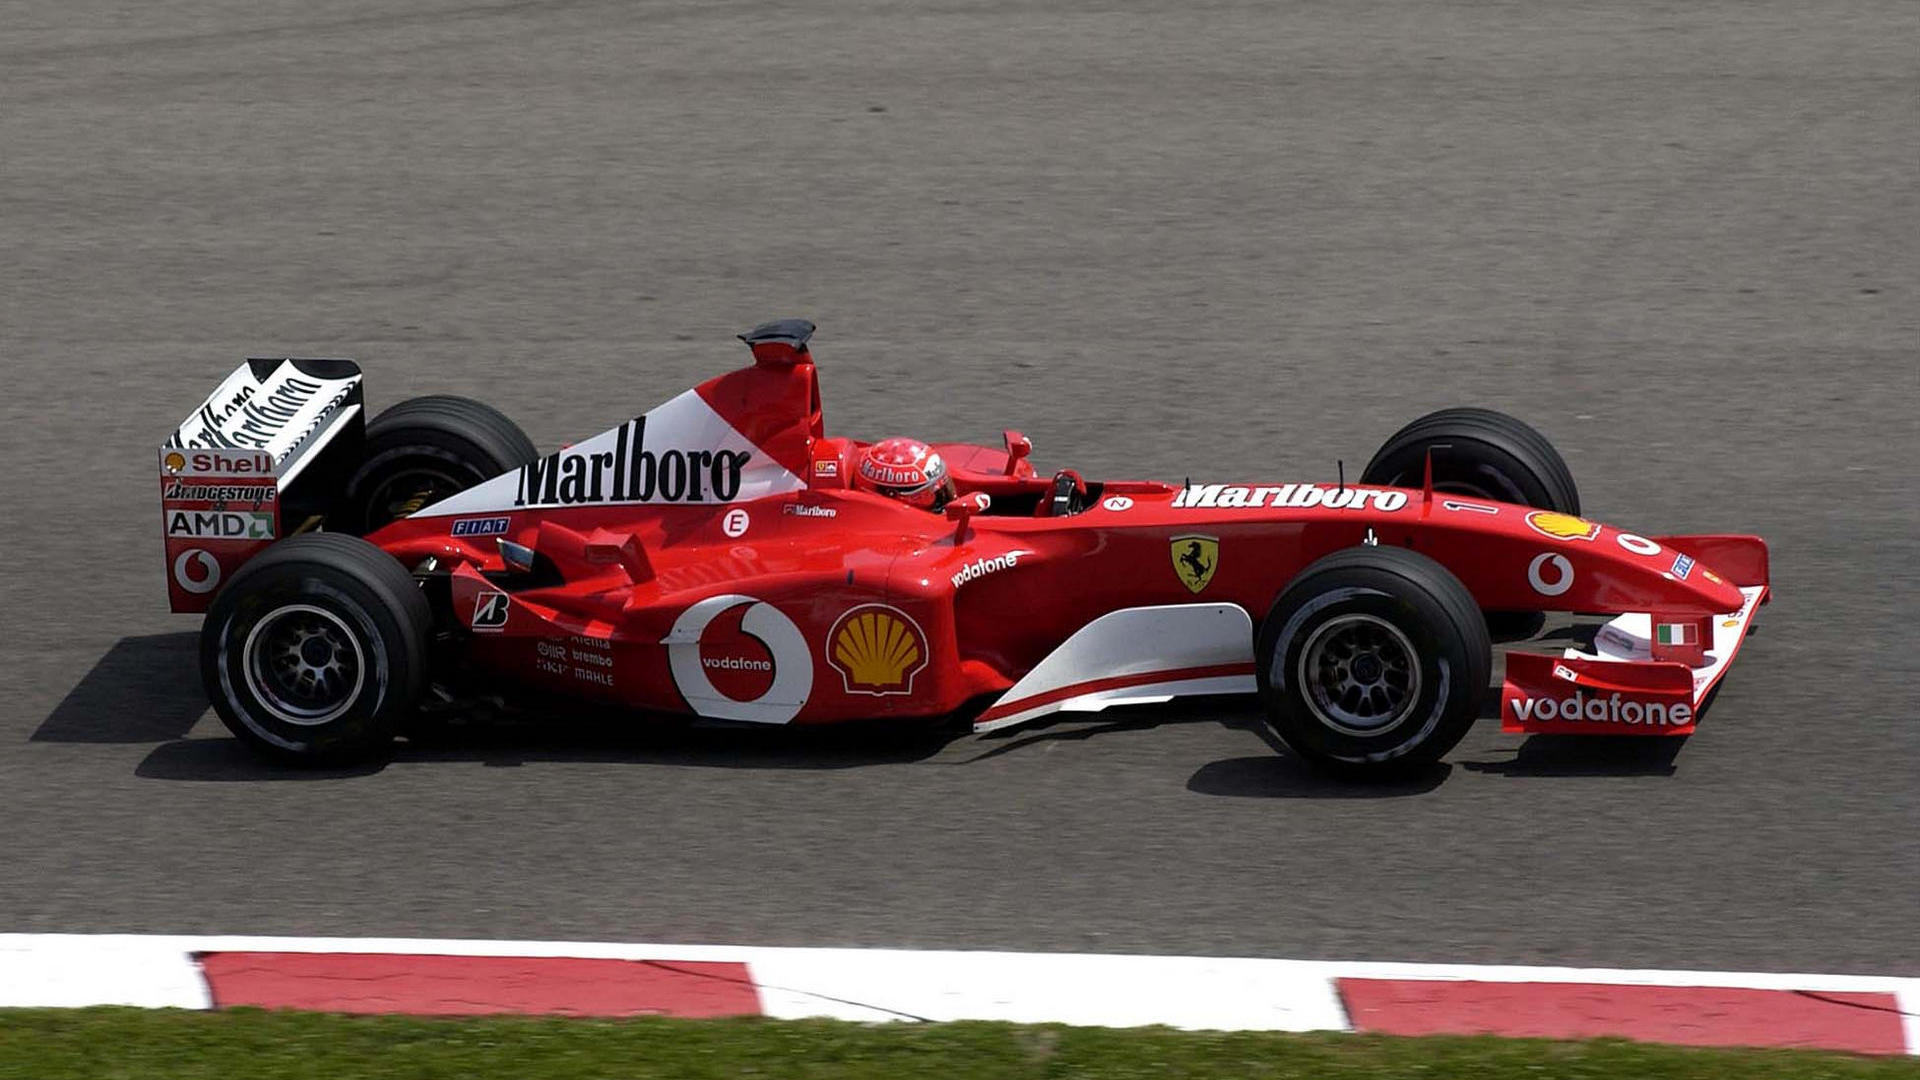 Hd Wallpapers 2002 Formula 1 Grand Prix Of Spain F1 Fansite